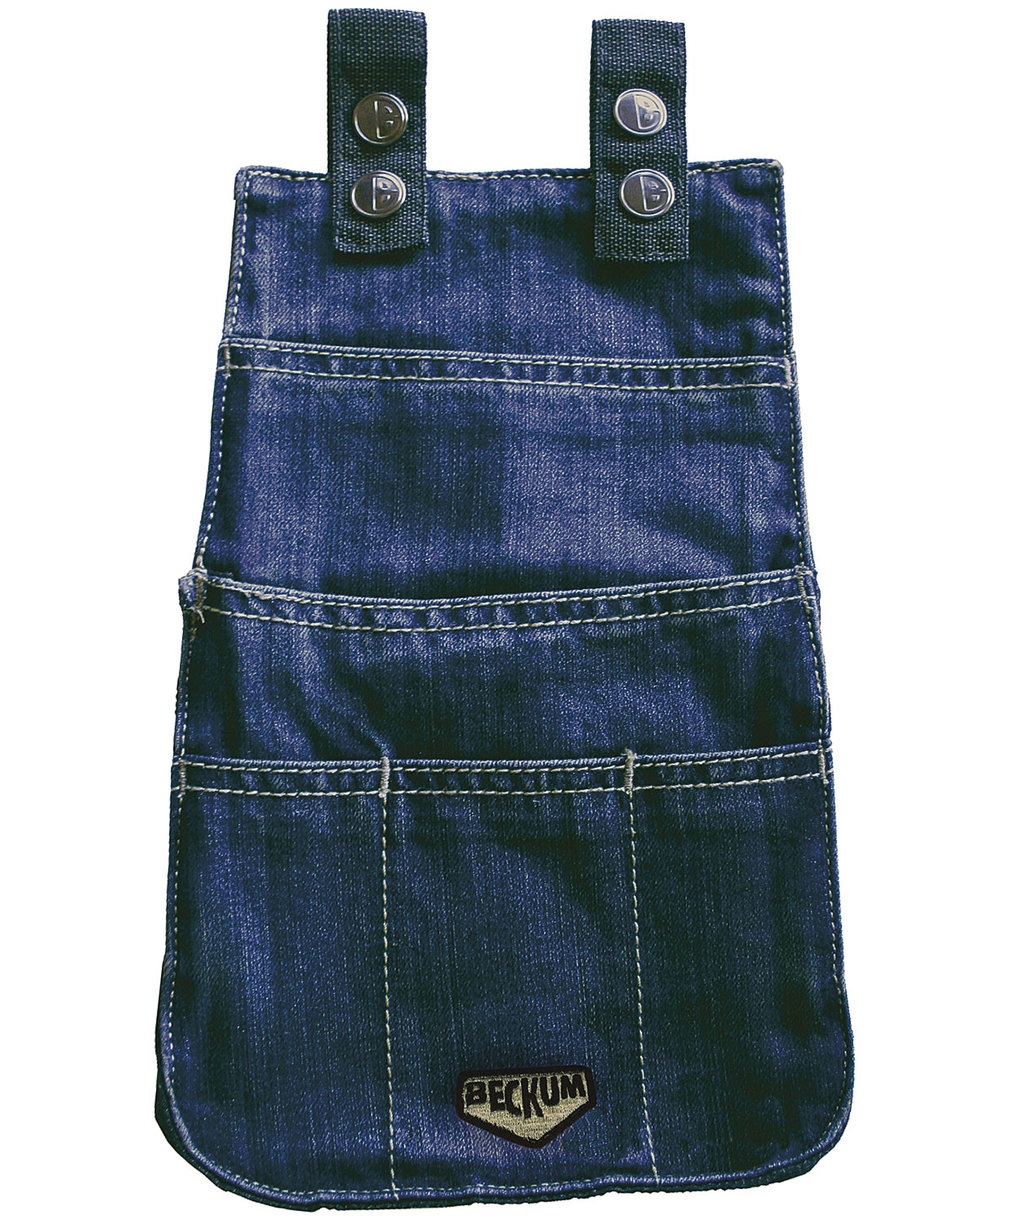 Beckum tool pocket, 100% cotton, Denim Blue